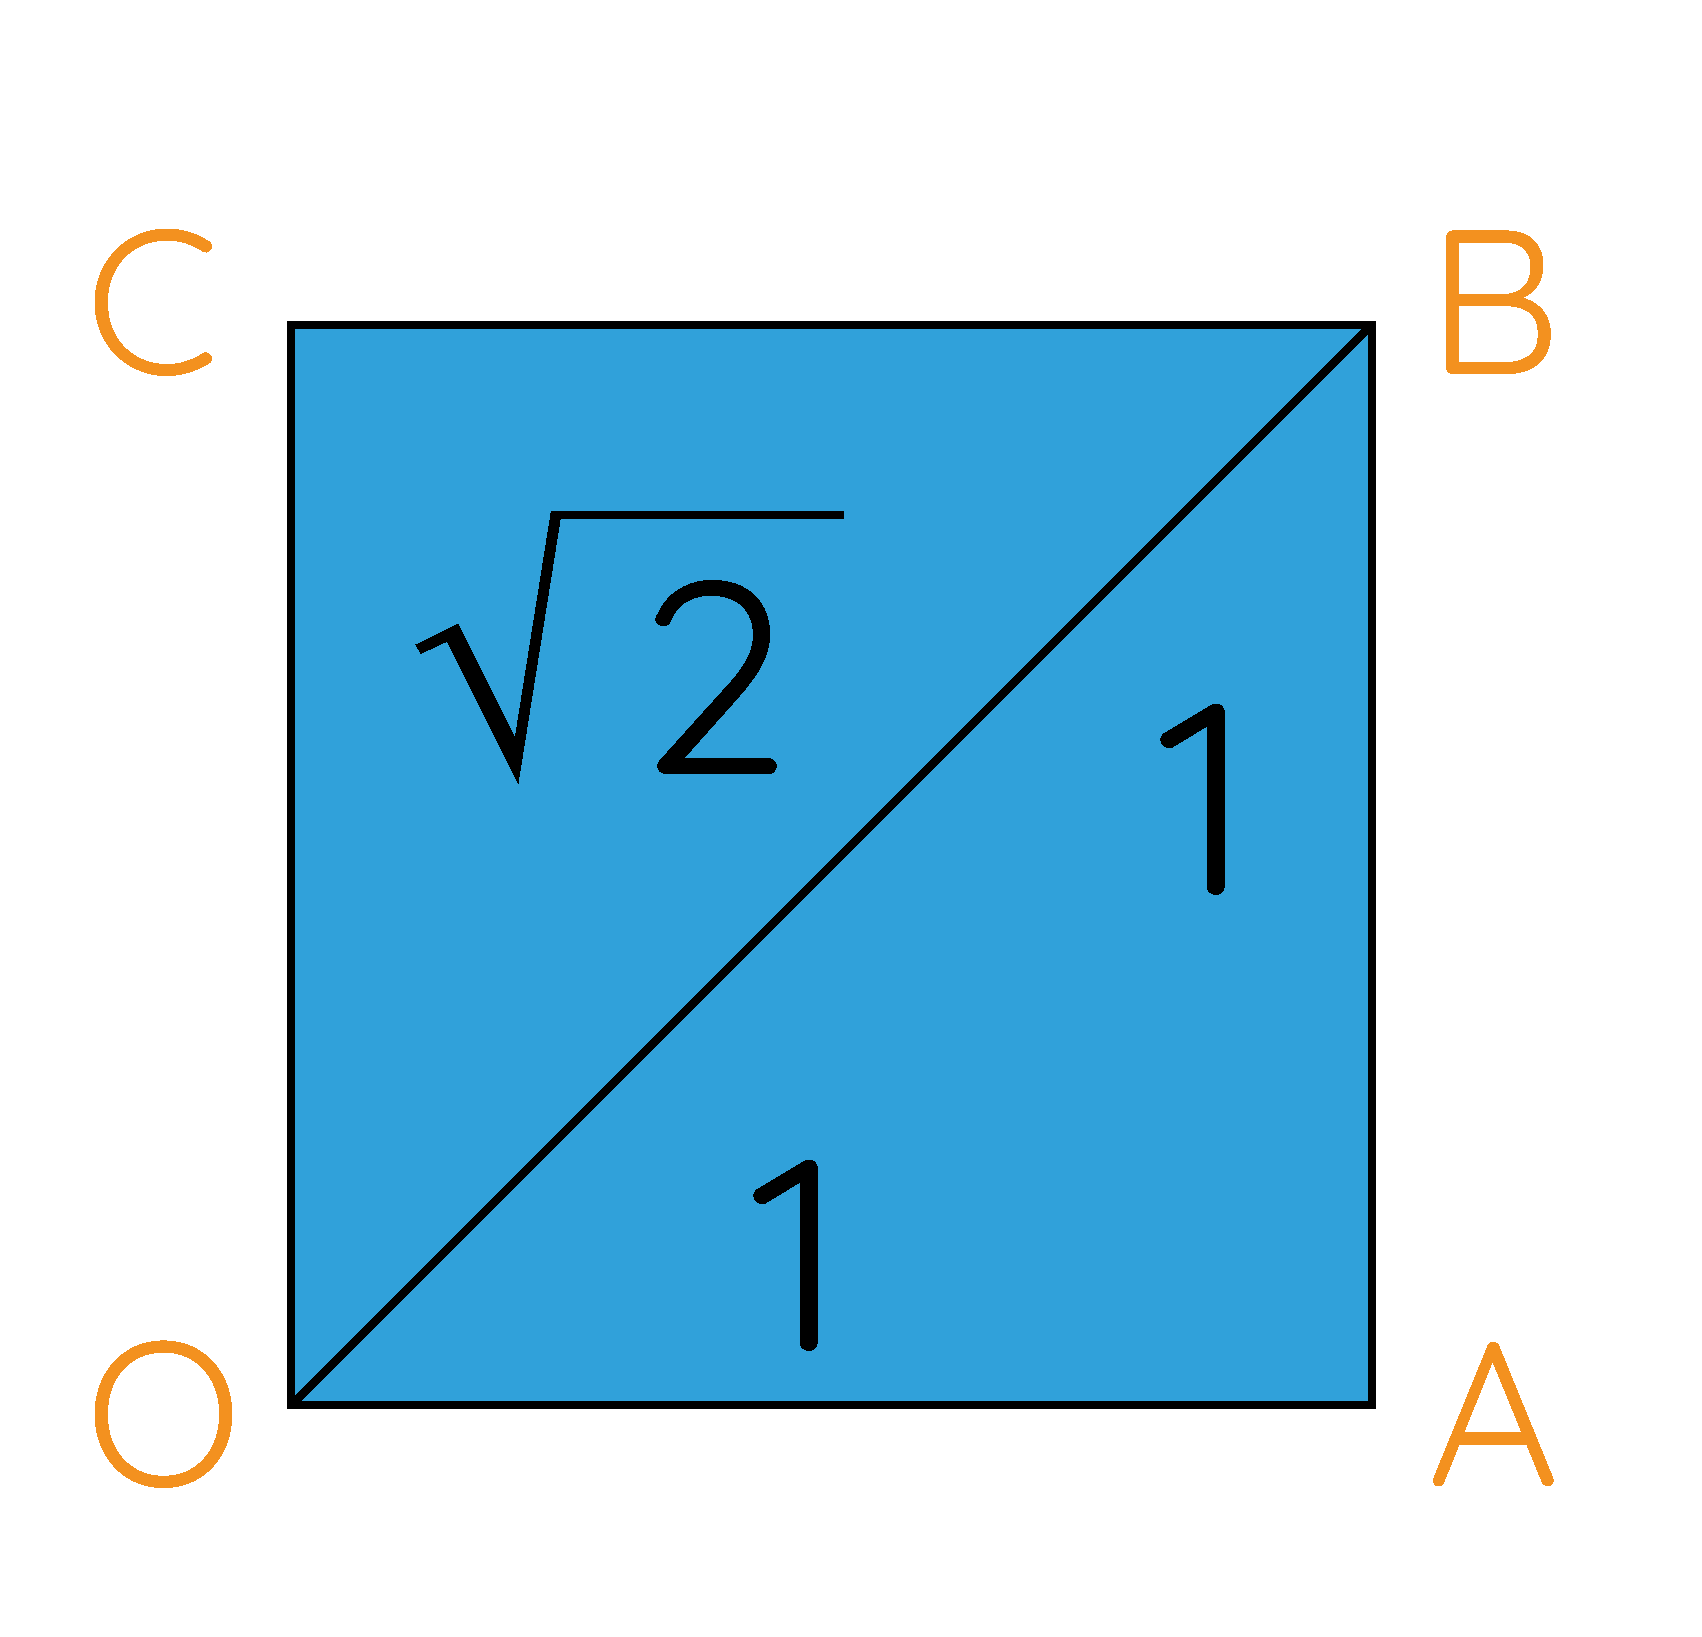 √2 is an irrational number